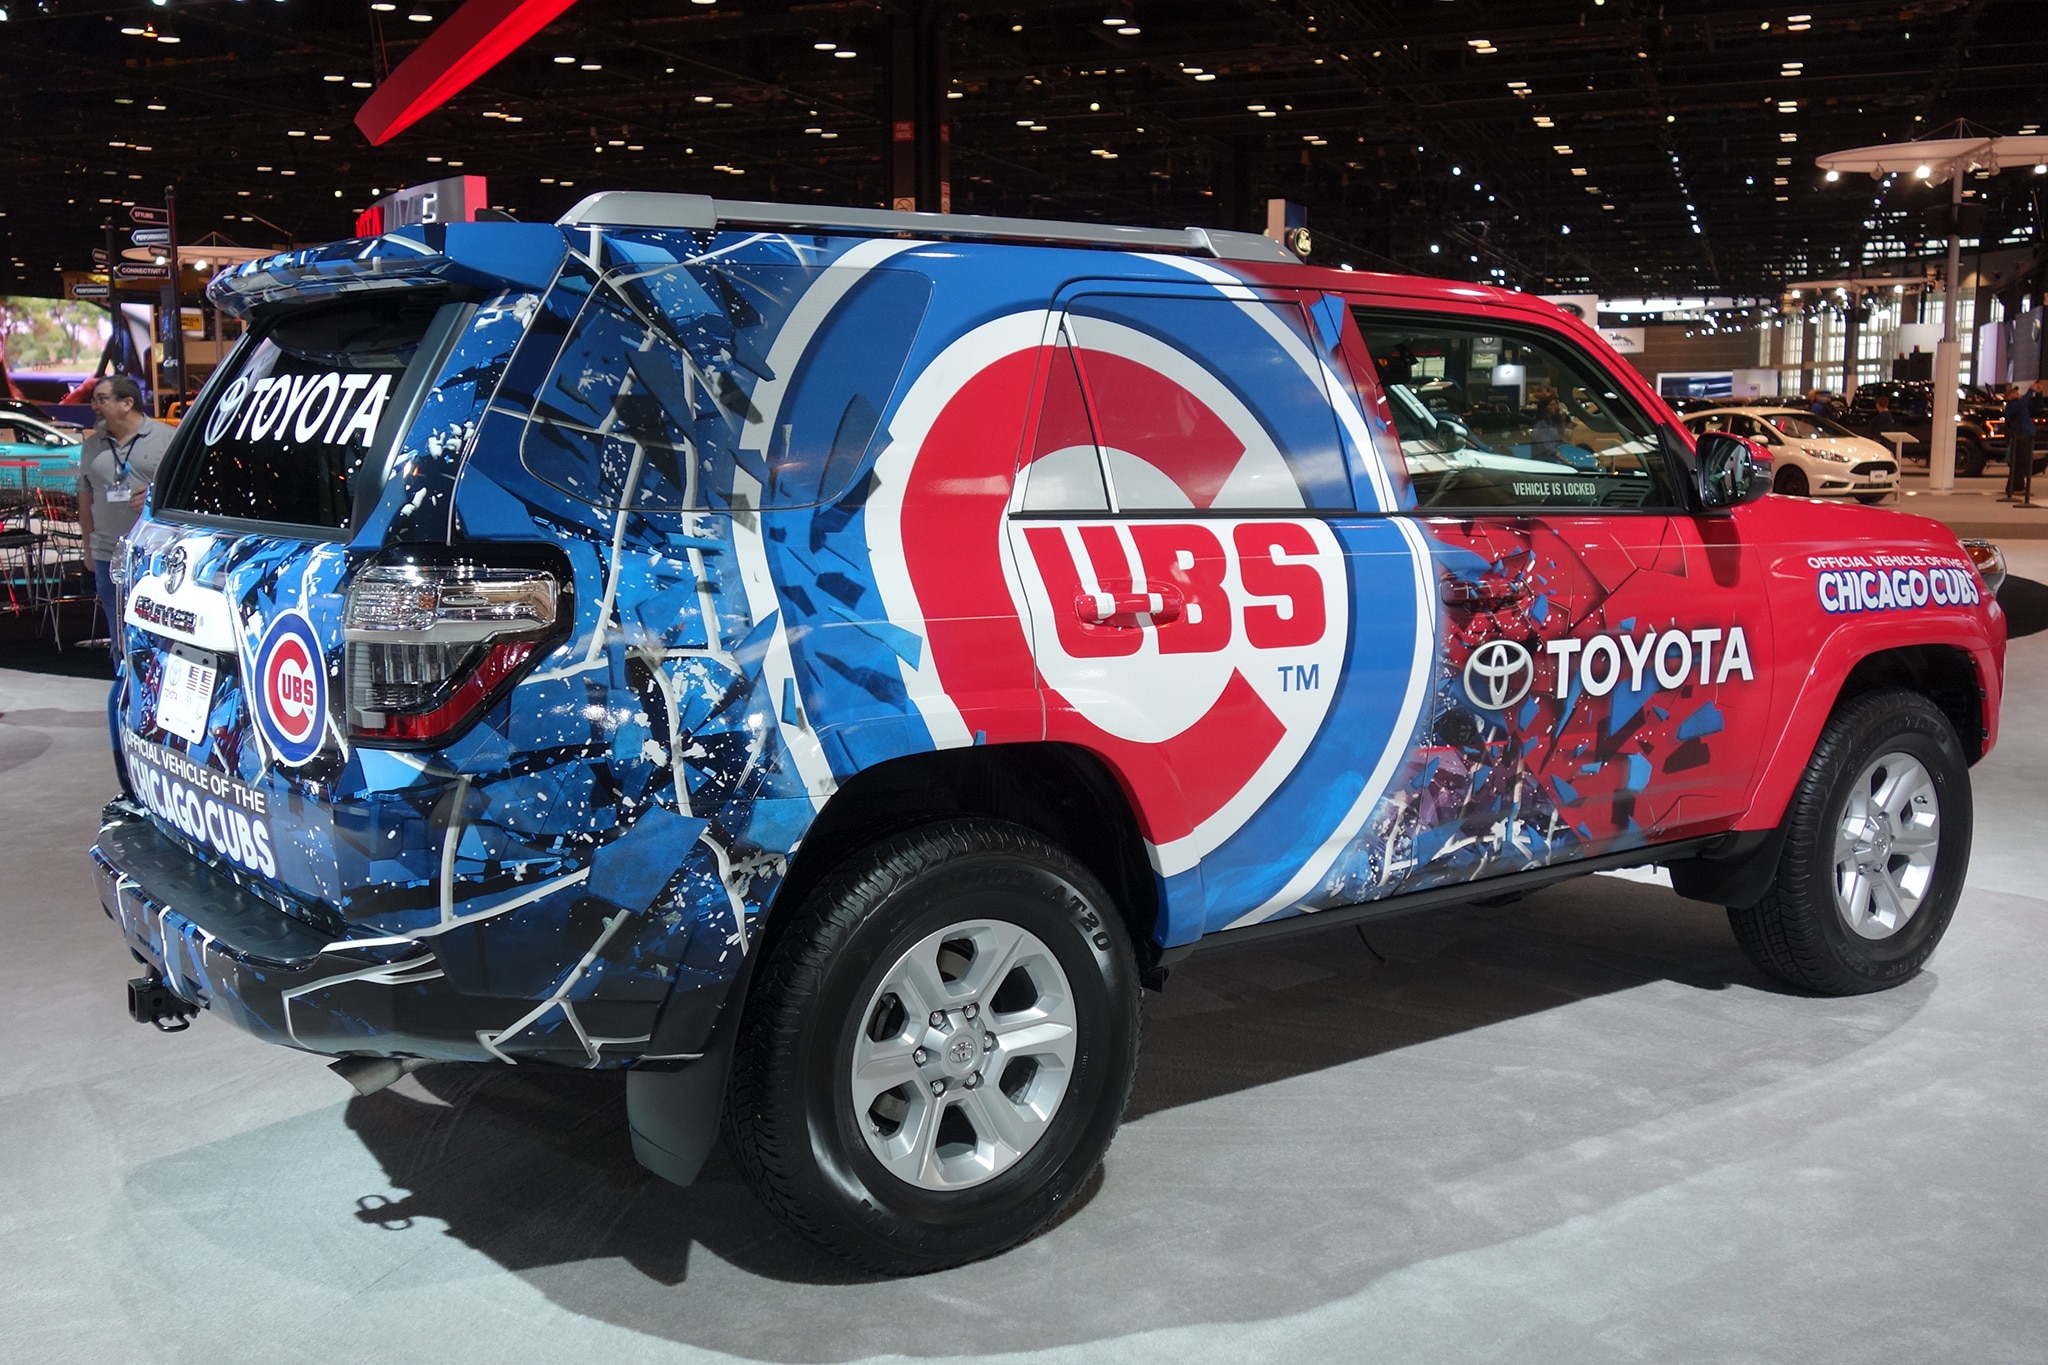 2018 Chicago Auto Show_Toyota Cubs